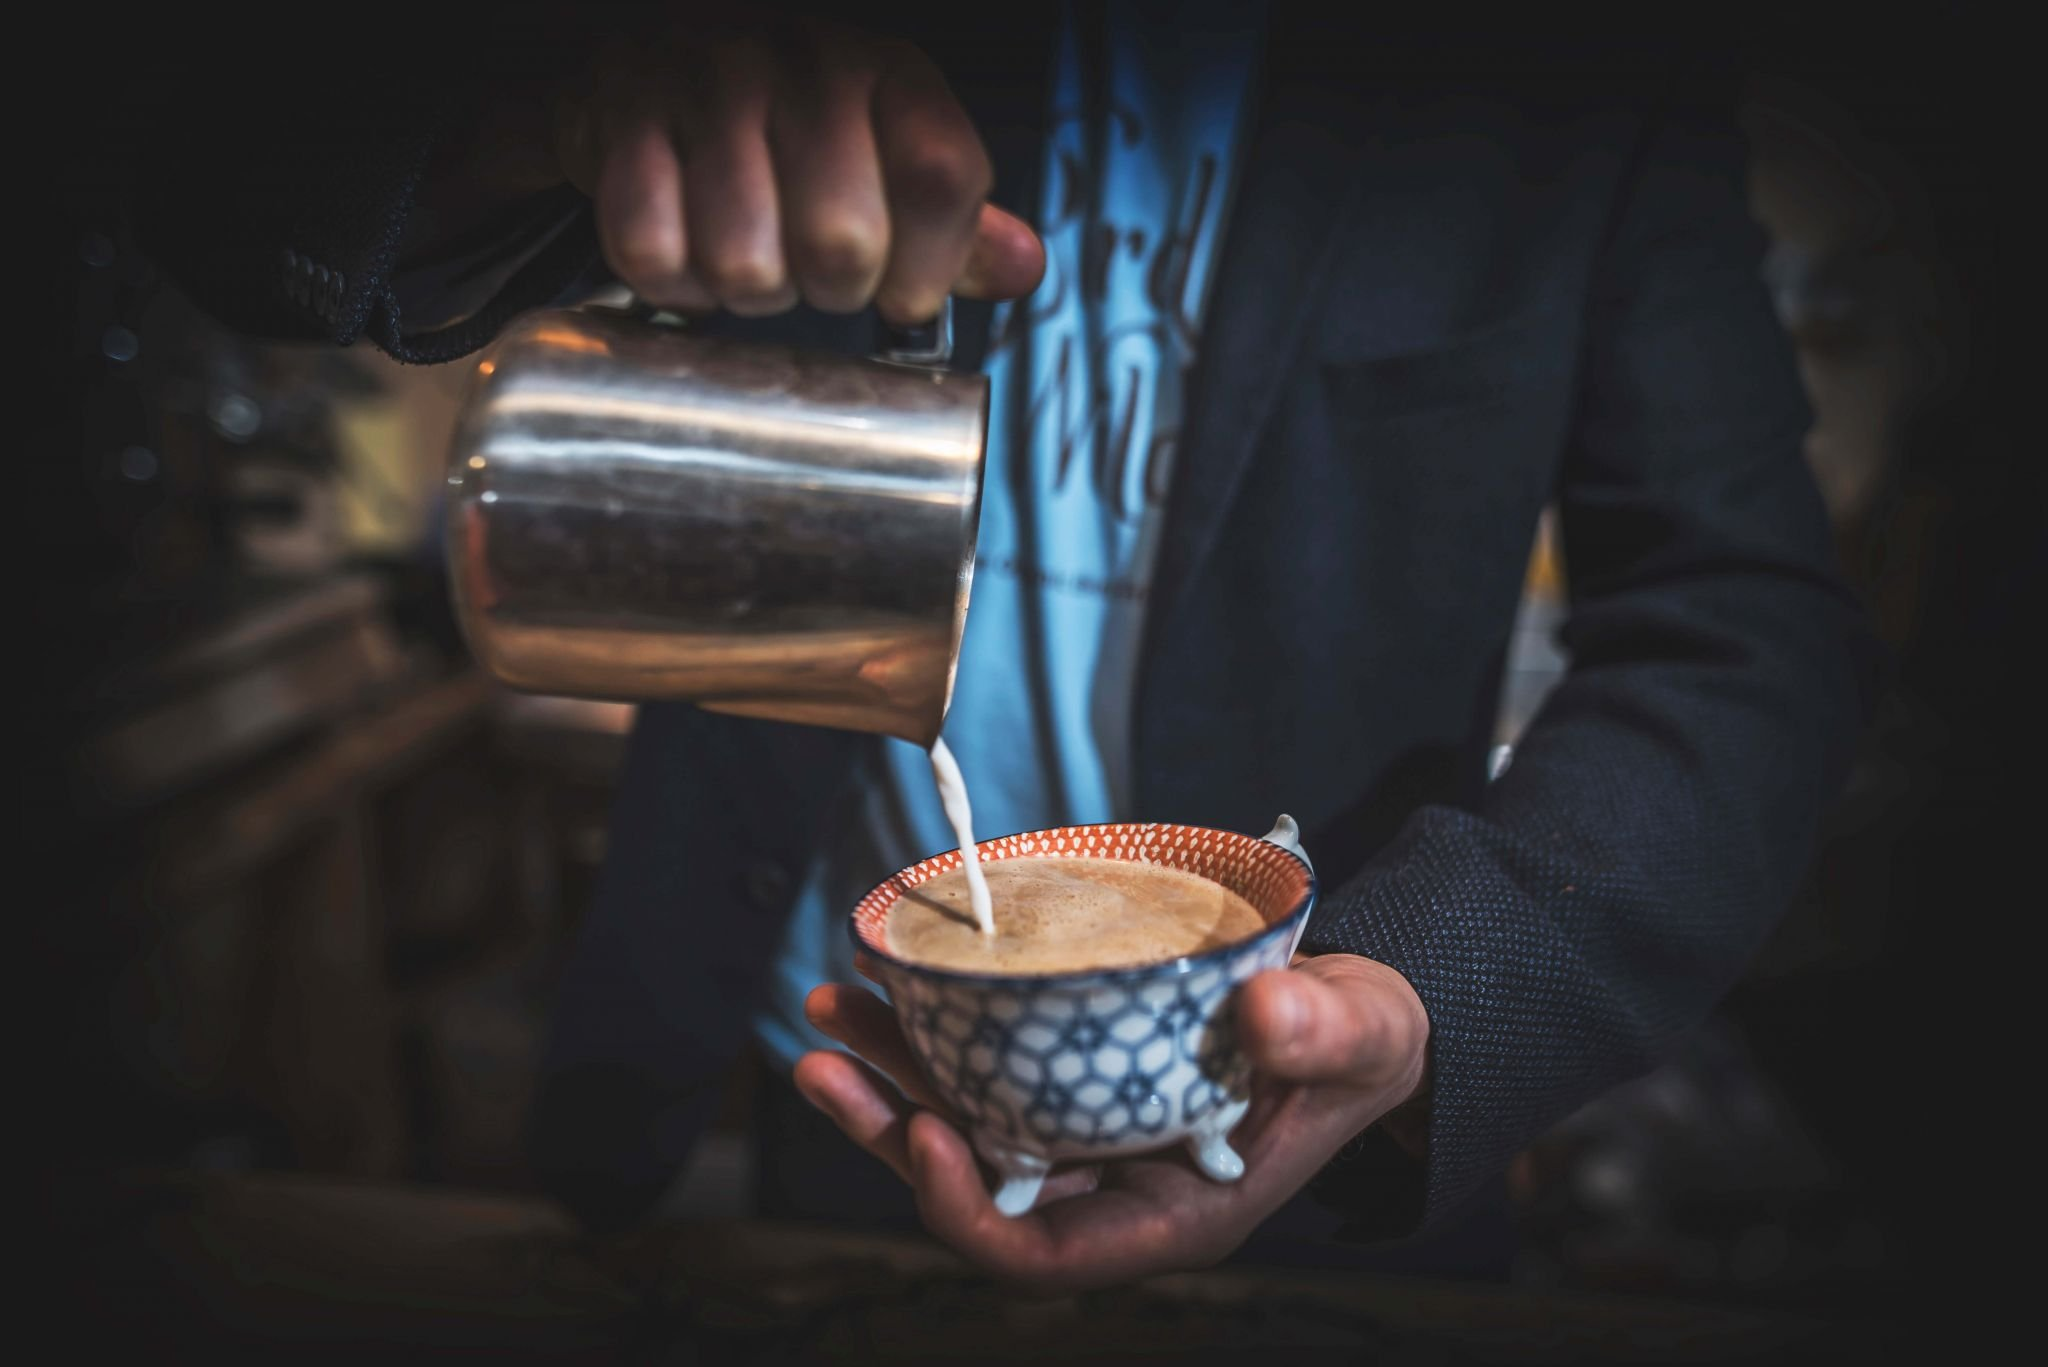 speciality coffees - milk being poured into a coffee